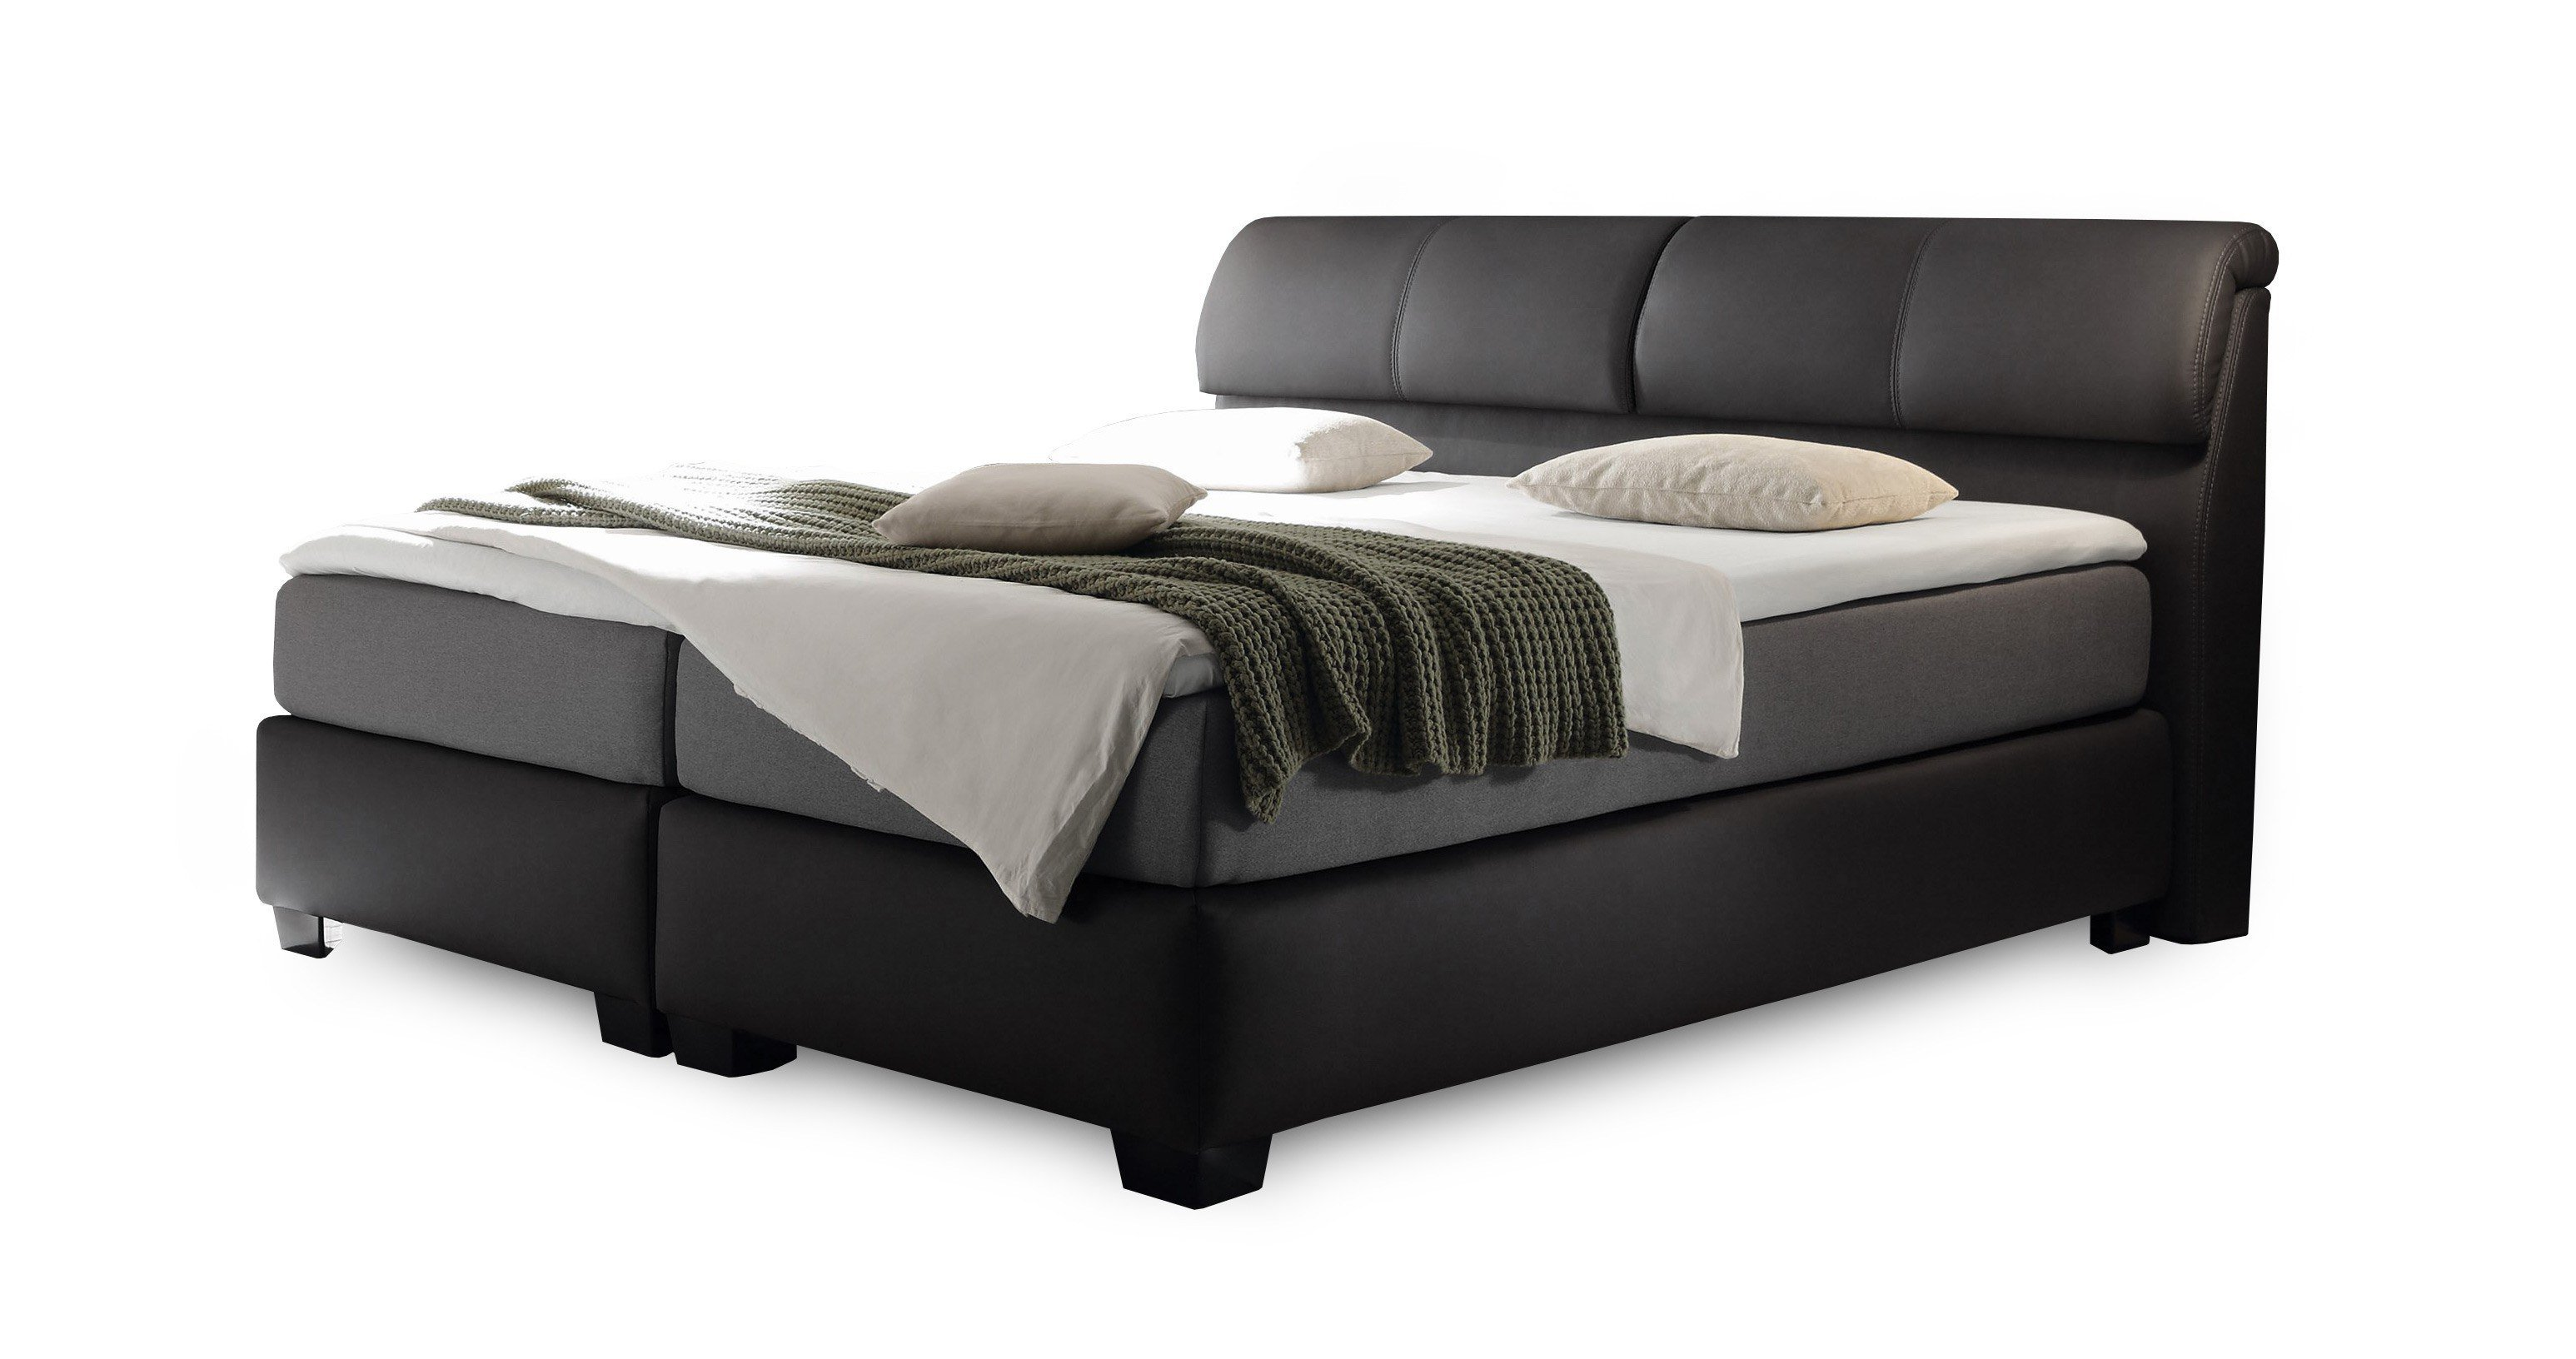 box spring bett fabulous box spring bett with box spring. Black Bedroom Furniture Sets. Home Design Ideas